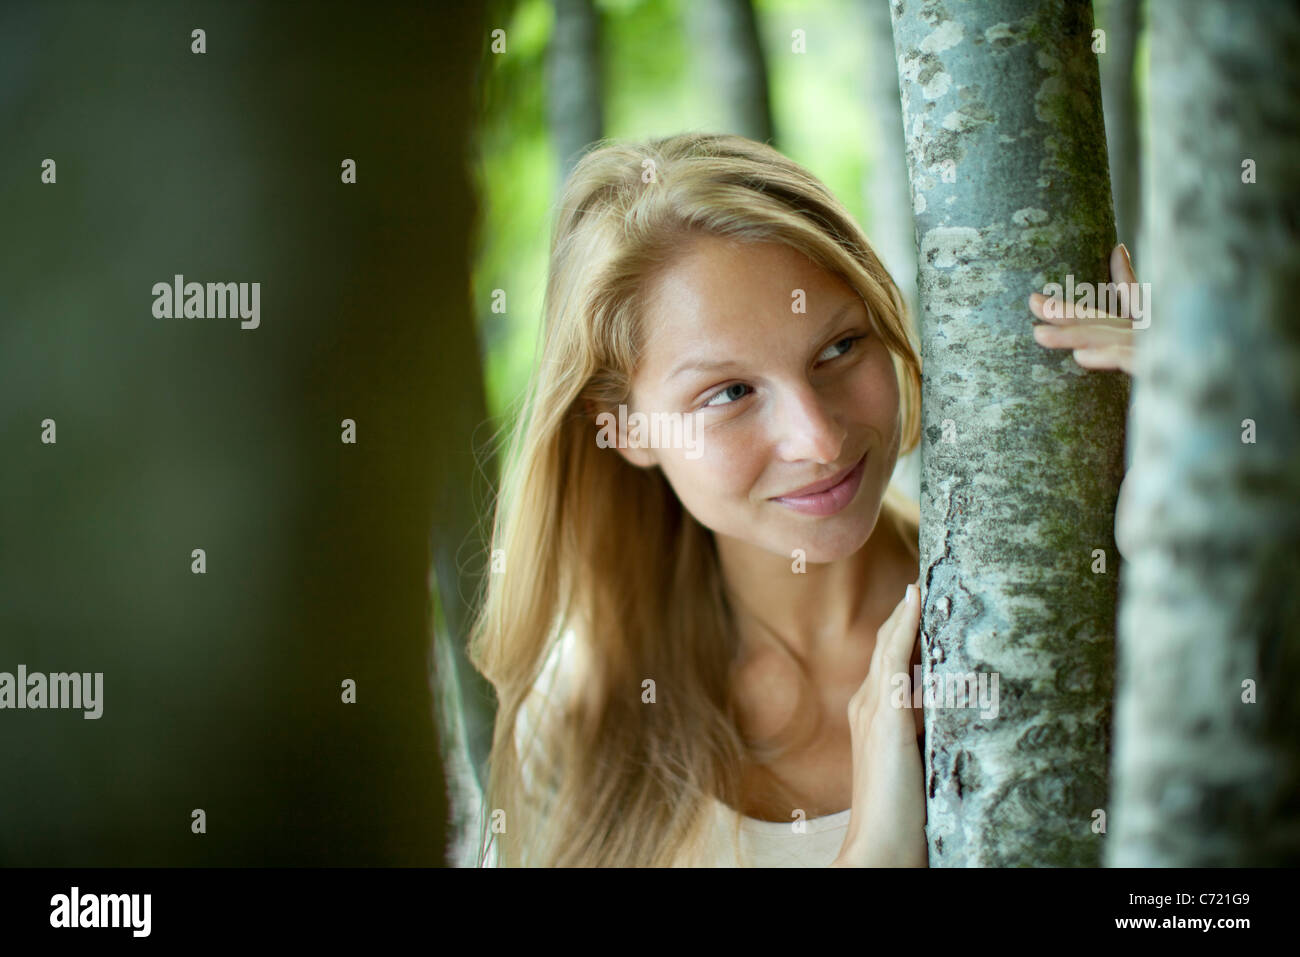 Young woman holding tree trunks - Stock Image